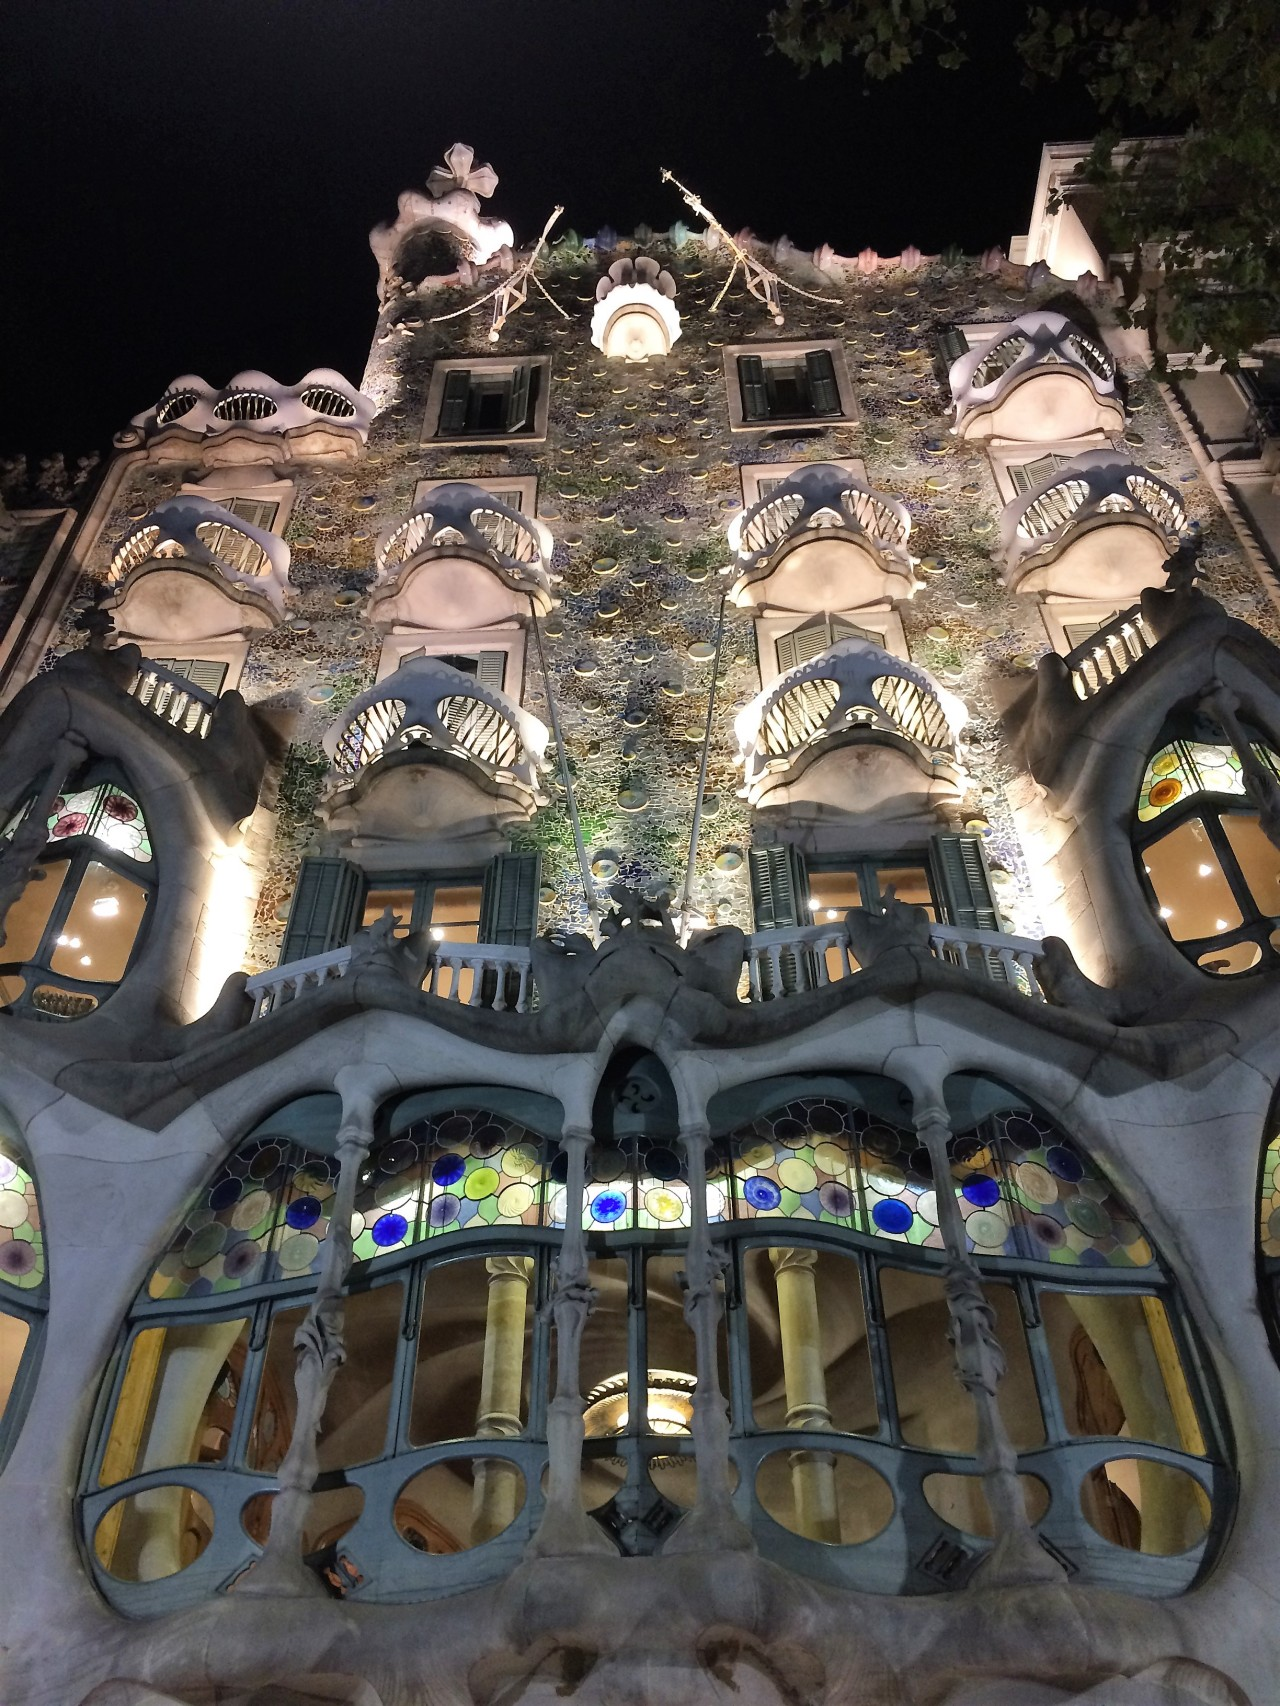 Barcelona: The Top 7 Free Things to Do